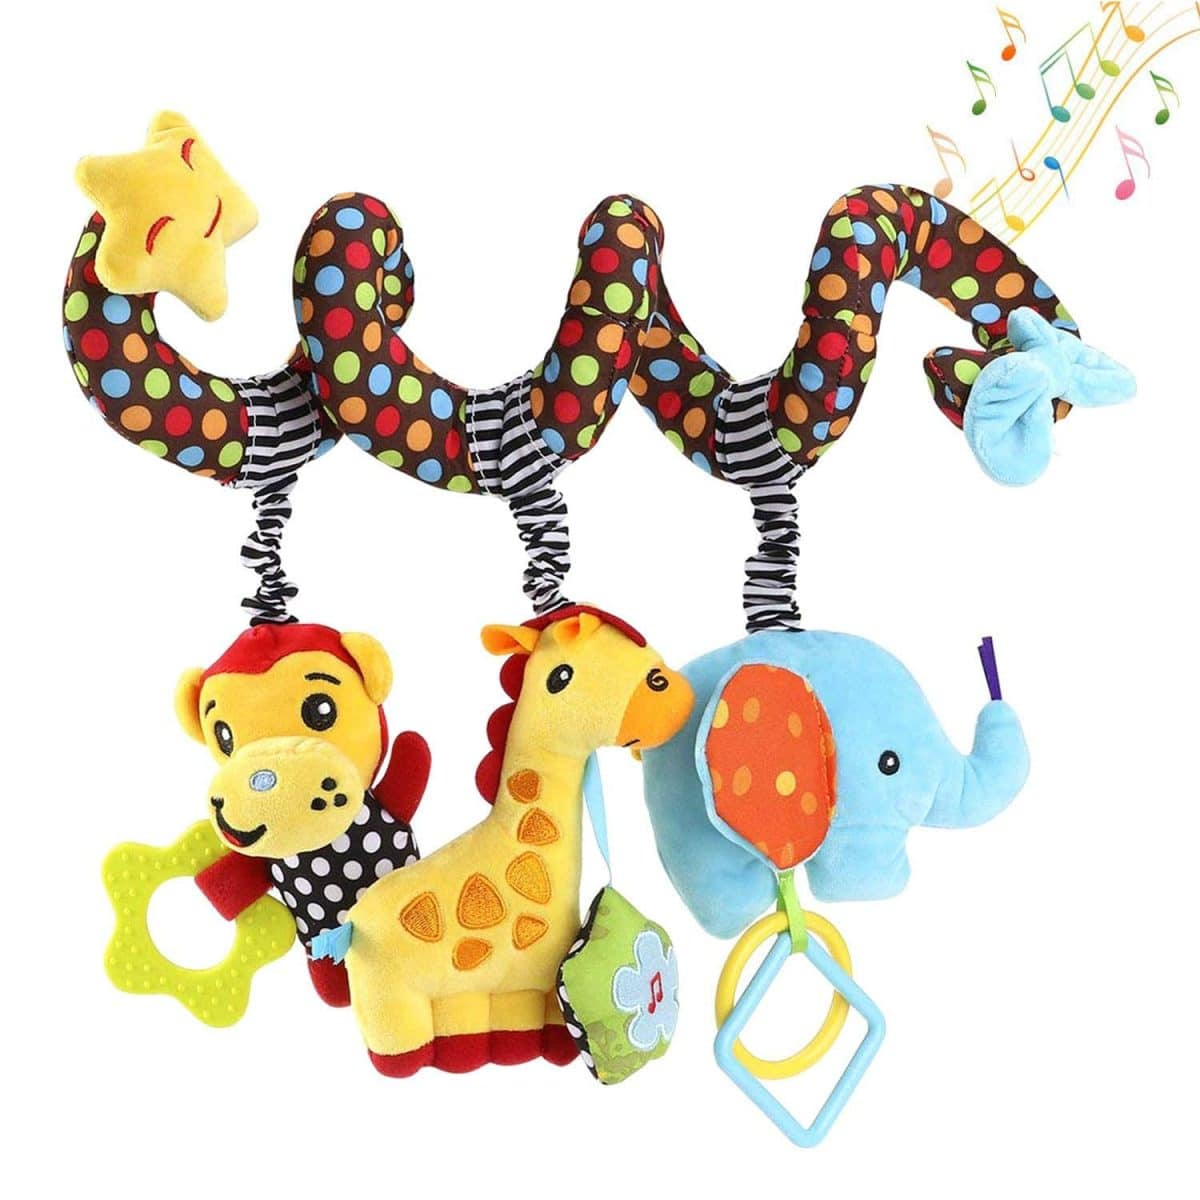 Elephant Cartoon Stroller Arch Rattle Hanging Baby Education Toy Around Crib Bed